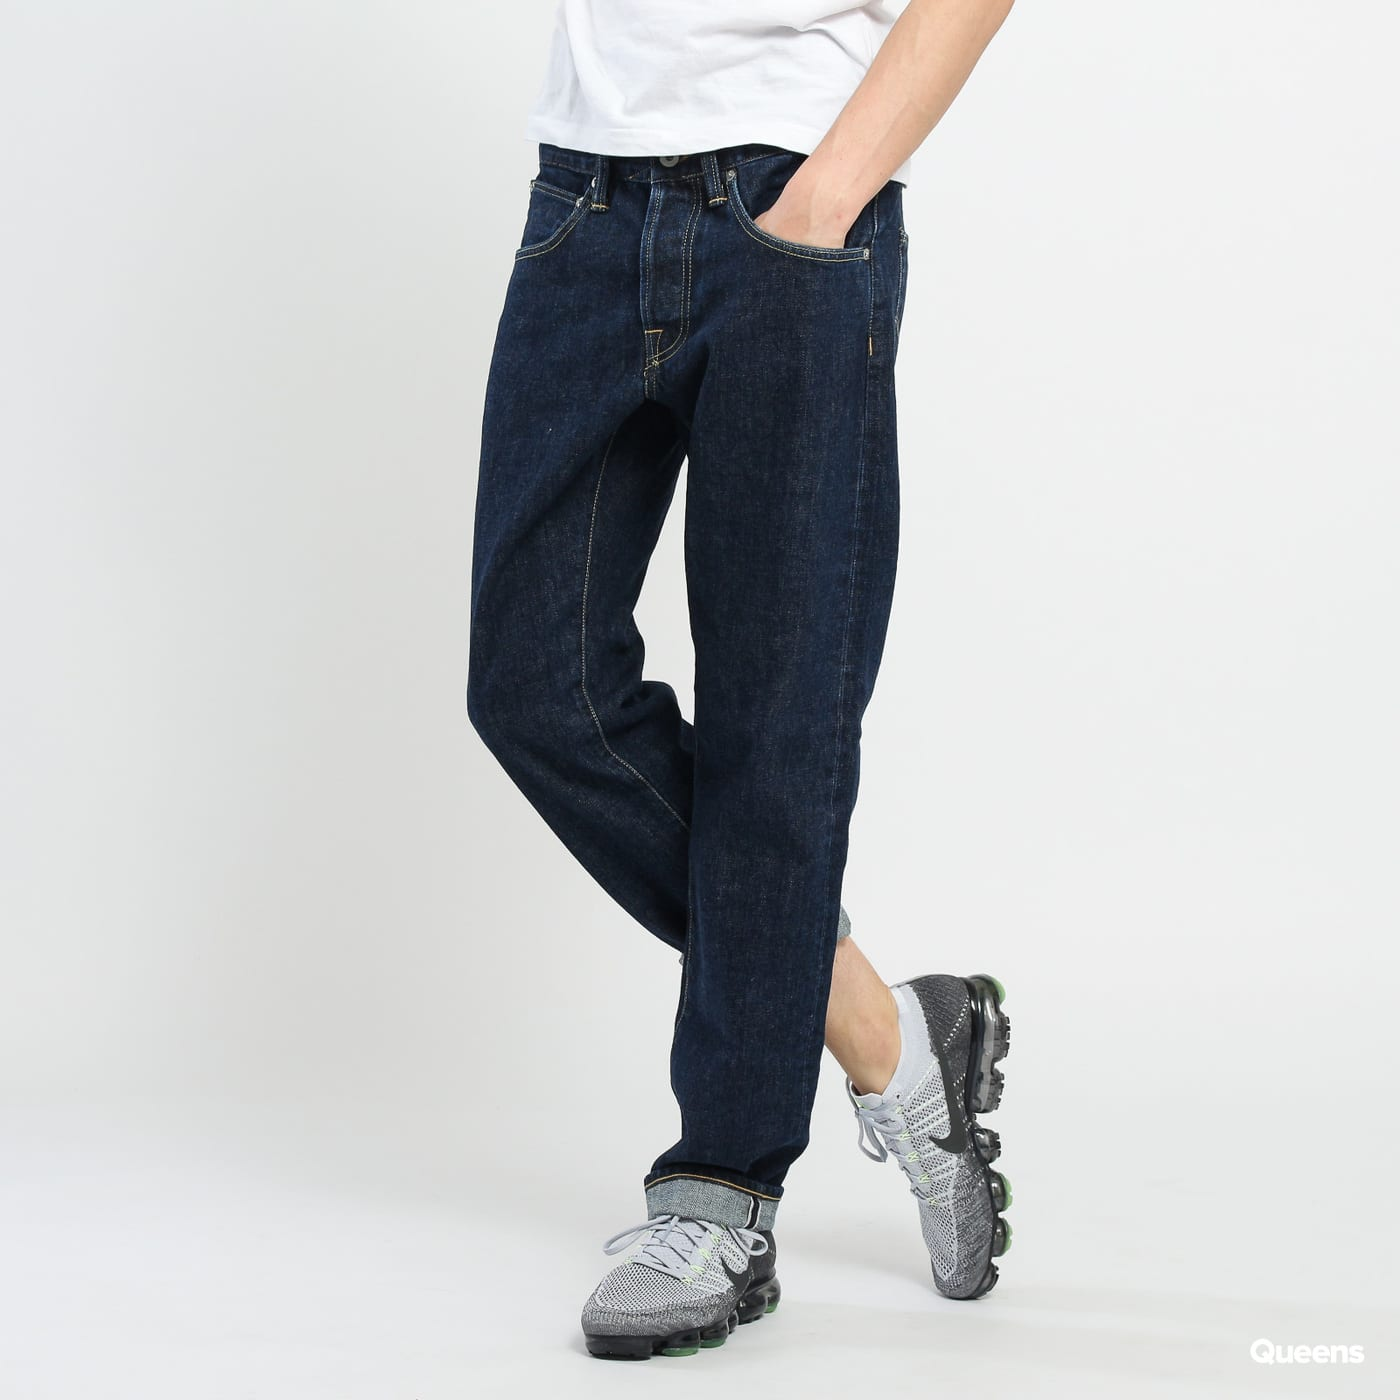 EDWIN ED-55 Regular Tapered Jeans Red Listed Selvage Denim - Dark Stone Dot